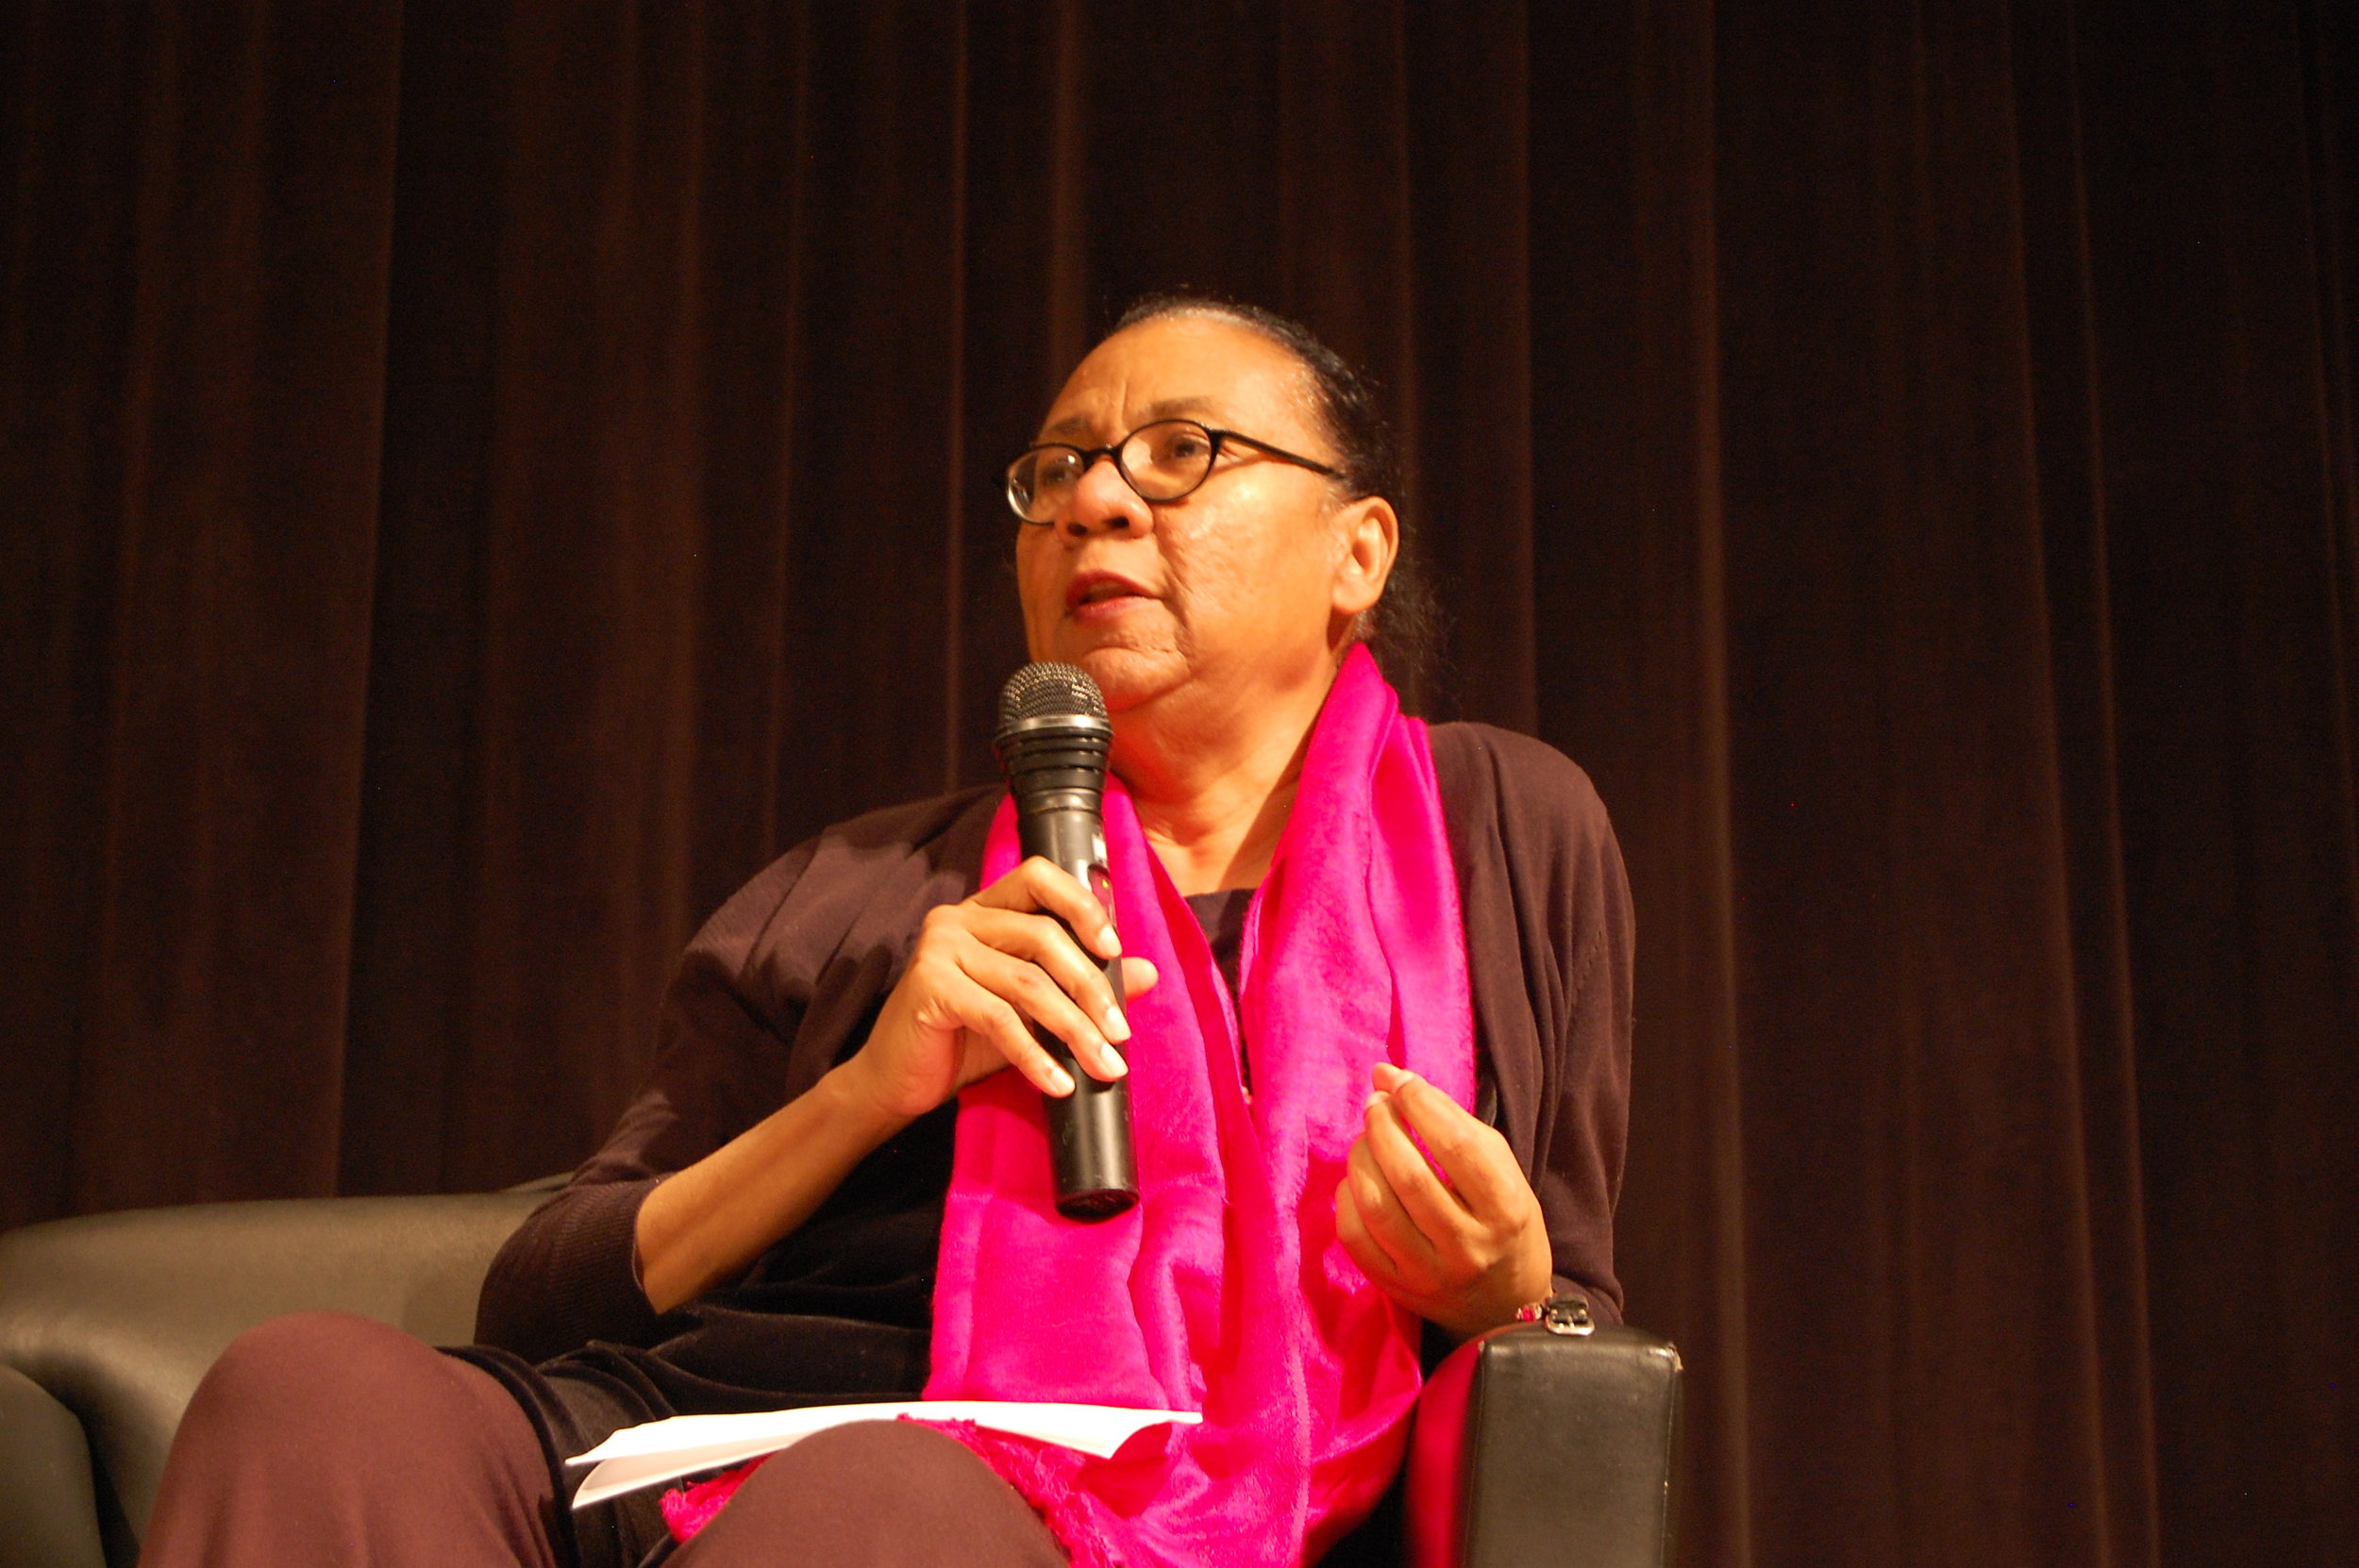 bell hooks speaking at the New School in 2014.